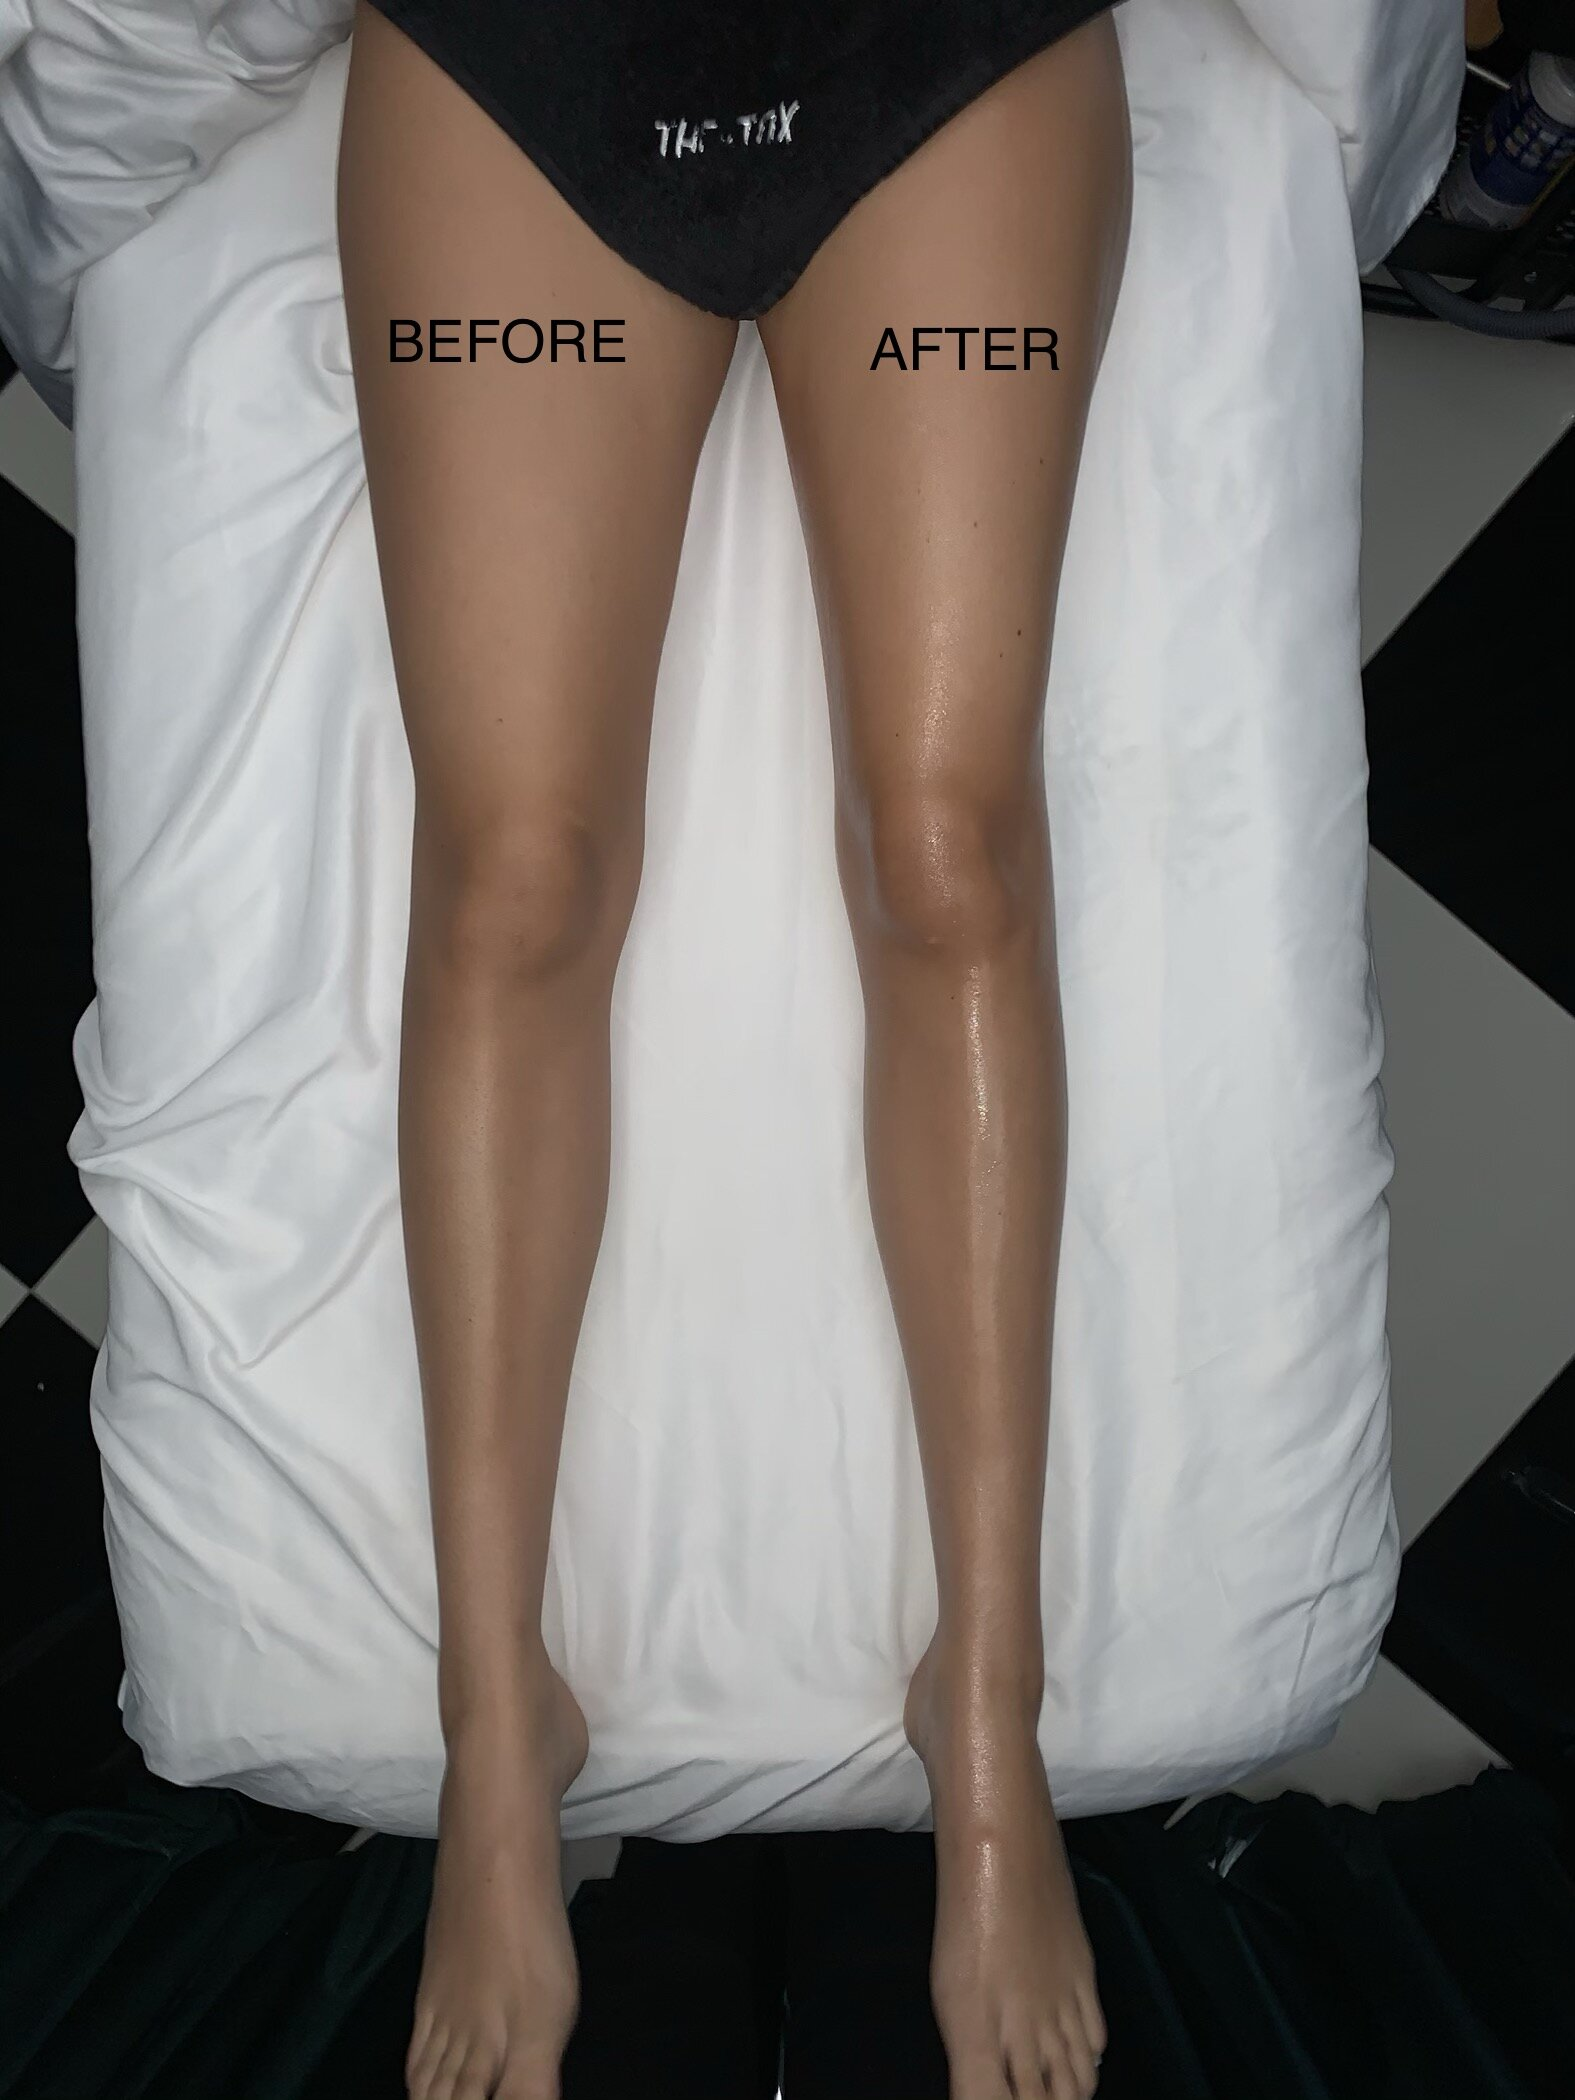 Lymphatic Drainage Before and After Julia Friedman